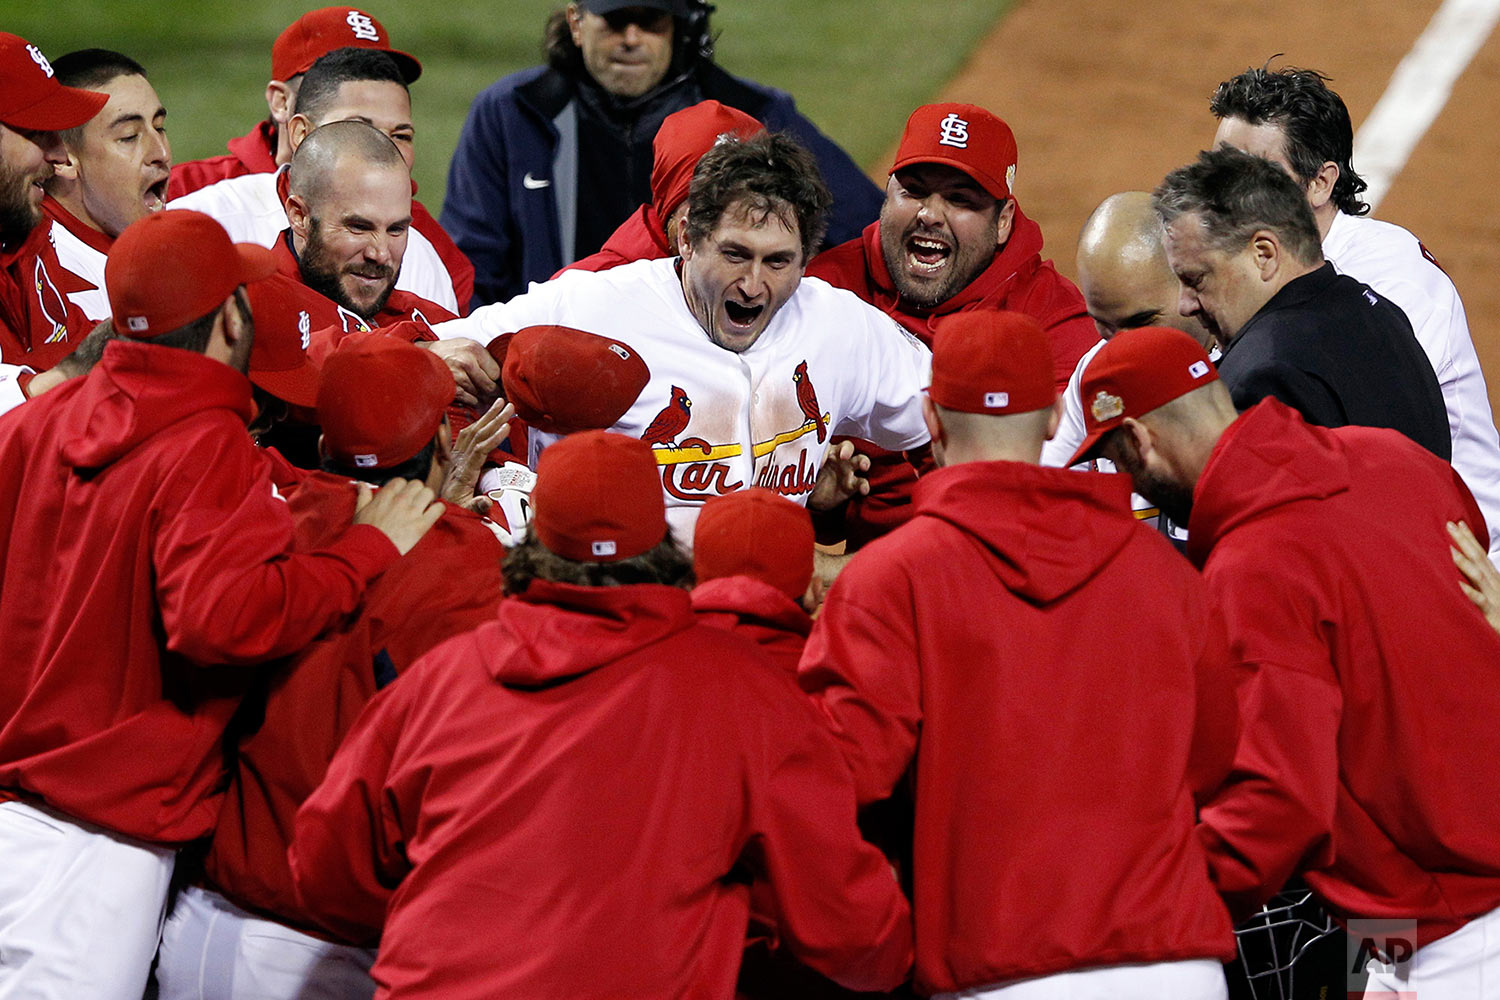 In this Oct. 27, 2011 photo, St. Louis Cardinals' David Freese, center, celebrates with teammates after hitting a walk-off home run in the 11th inning of Game 6 of baseball's World Series against the Texas Rangers in St. Louis. (AP Photo/Eric Gay)